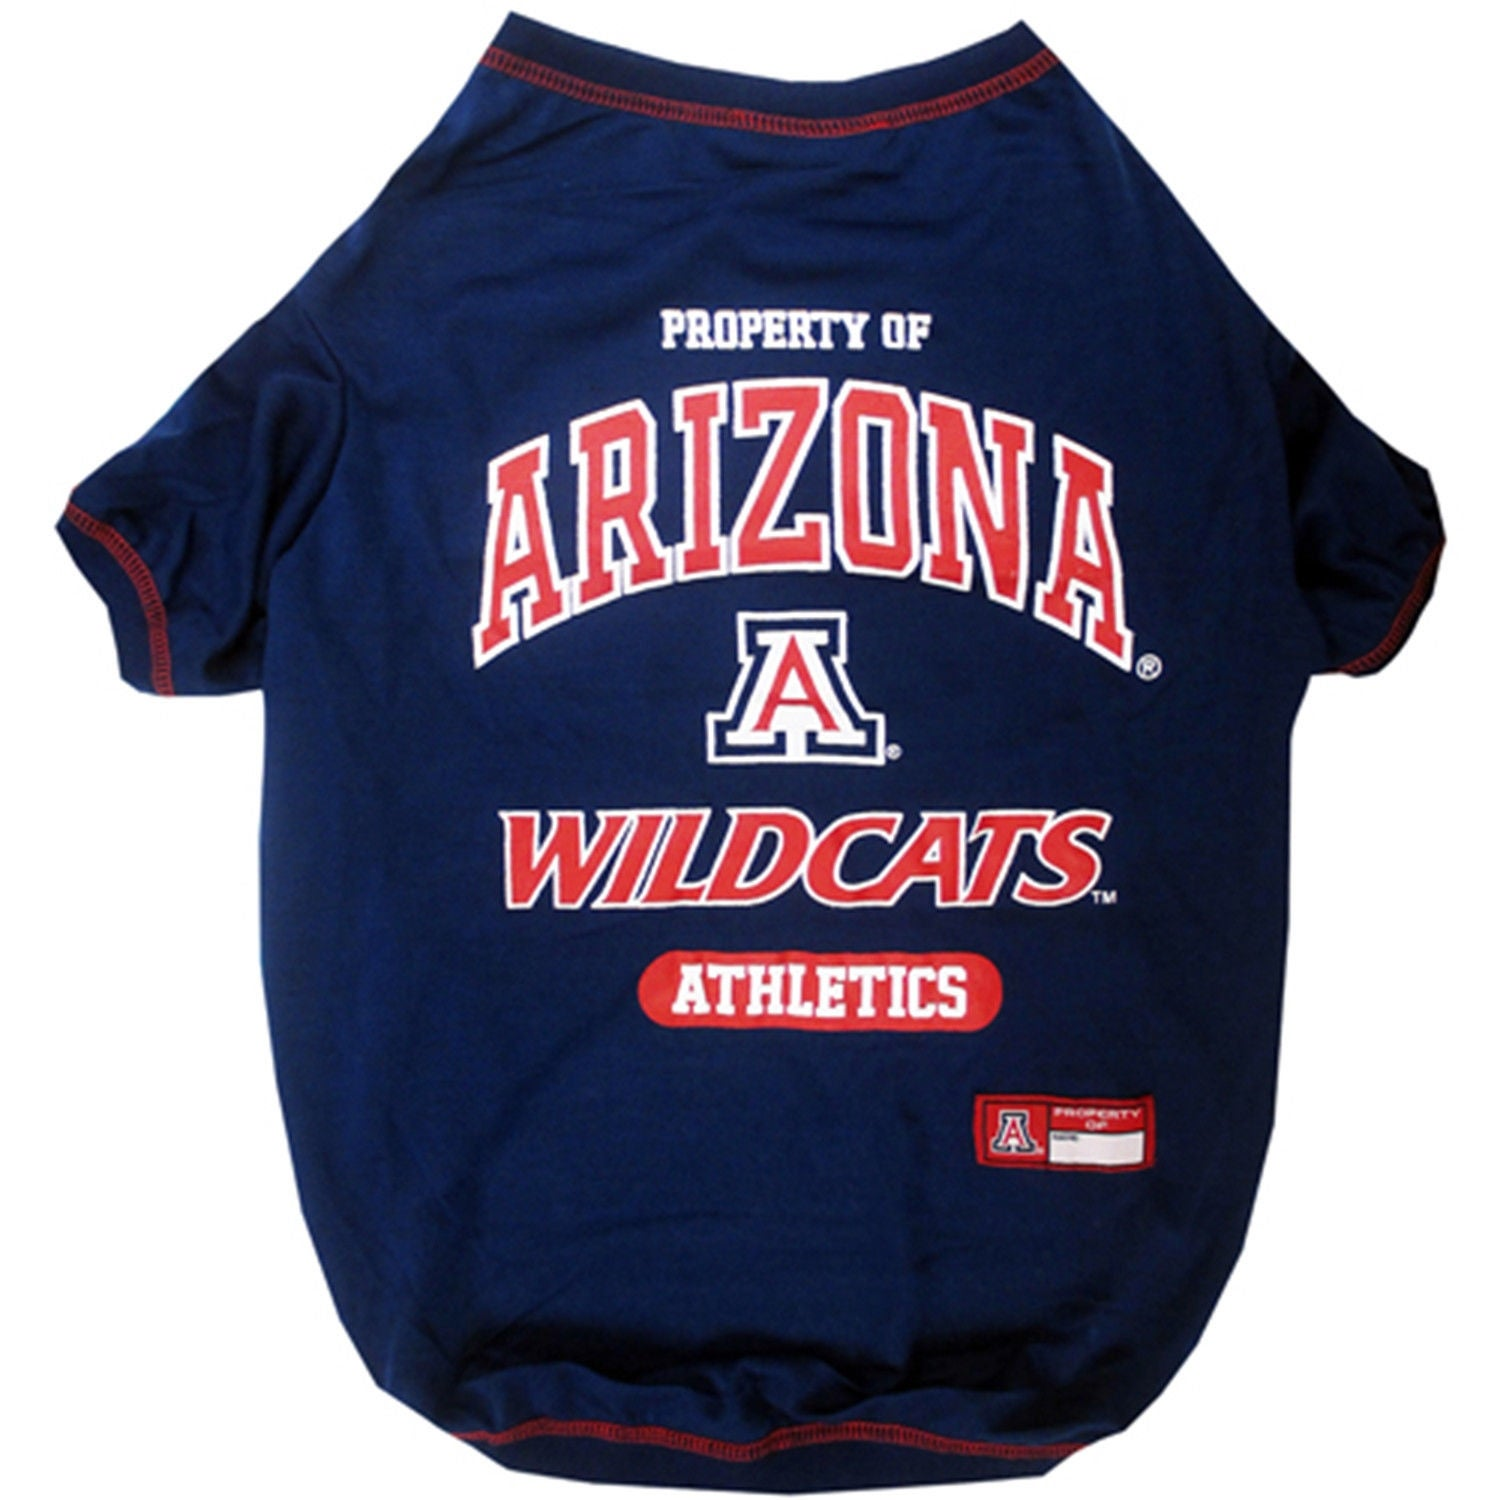 c8575a70b86 Shop Pets First NCAA Tee Shirt for Dogs and Cats - Licensed. - Free  Shipping On Orders Over $45 - Overstock - 22869184